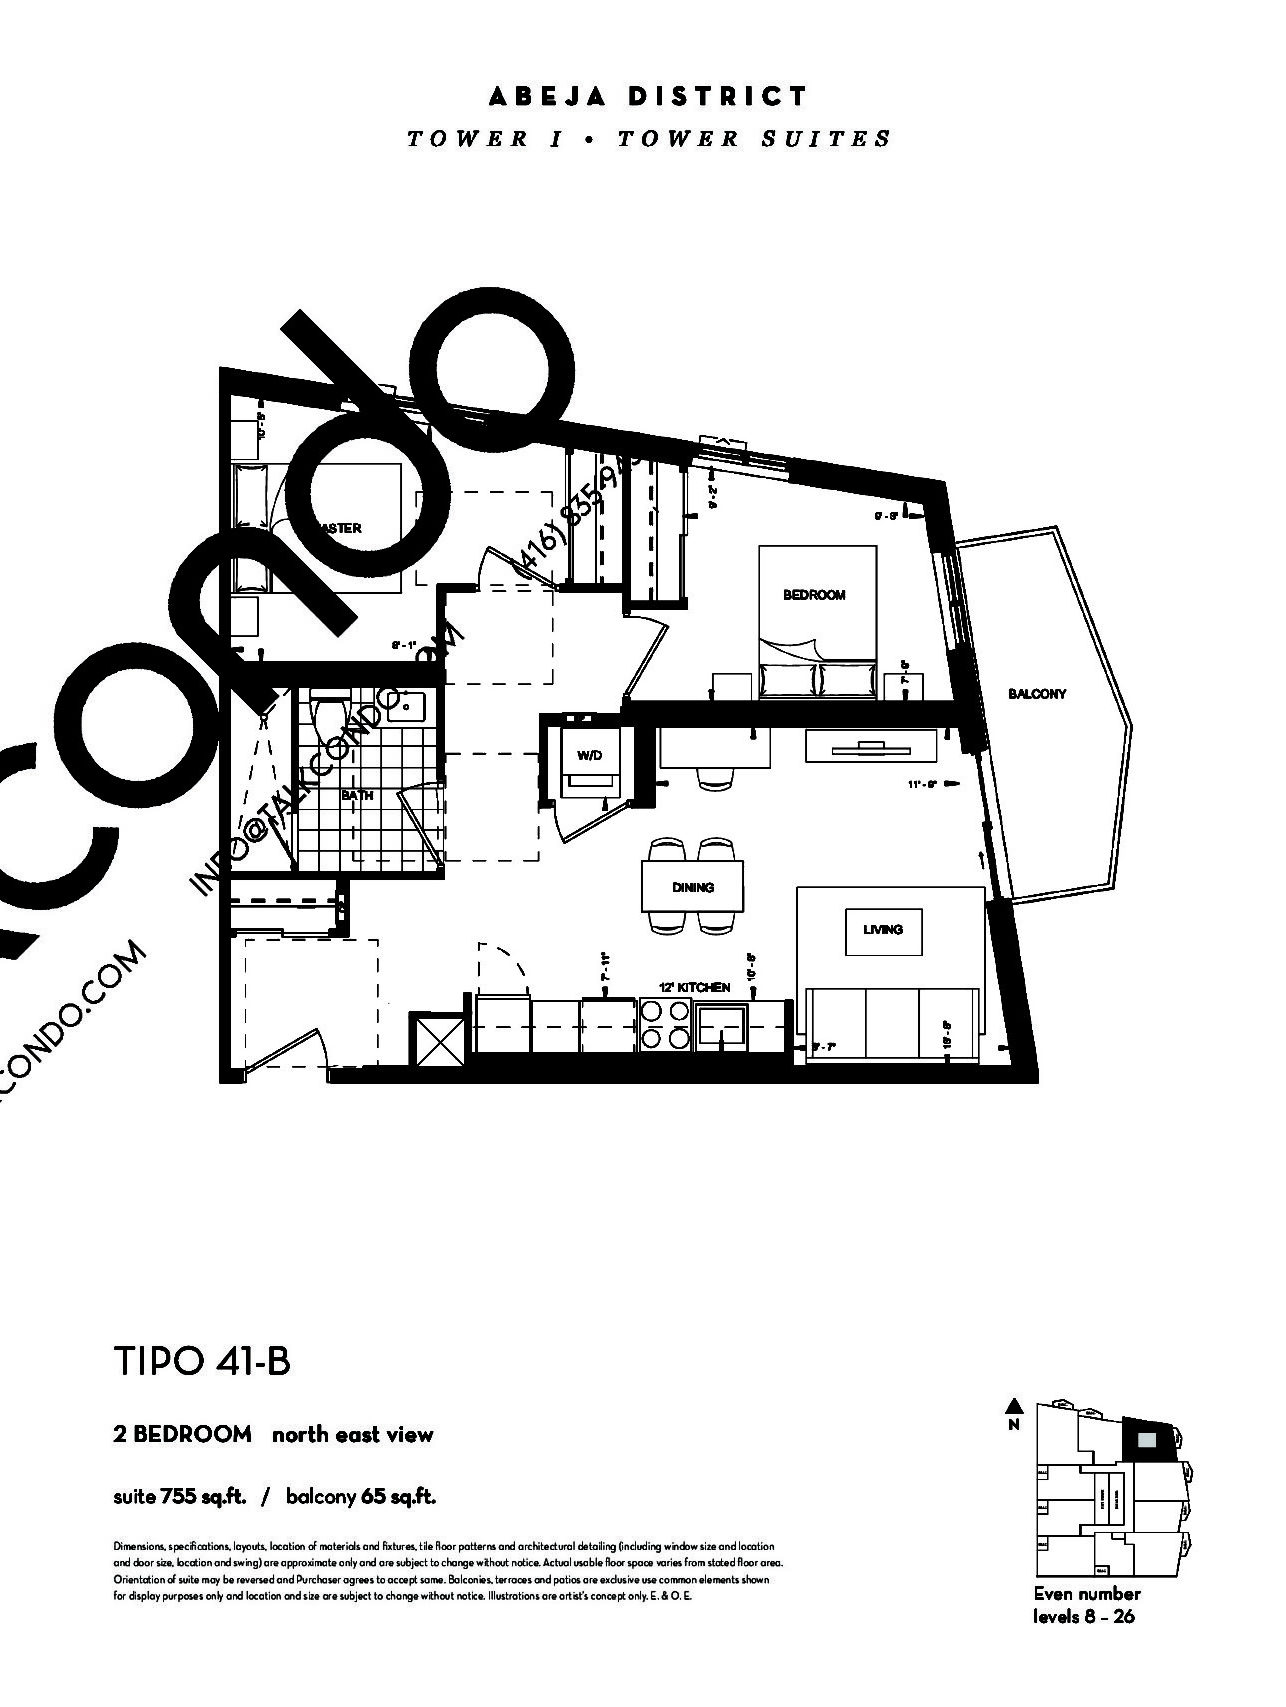 TIPO 41-B (Tower) Floor Plan at Abeja District Condos - 755 sq.ft